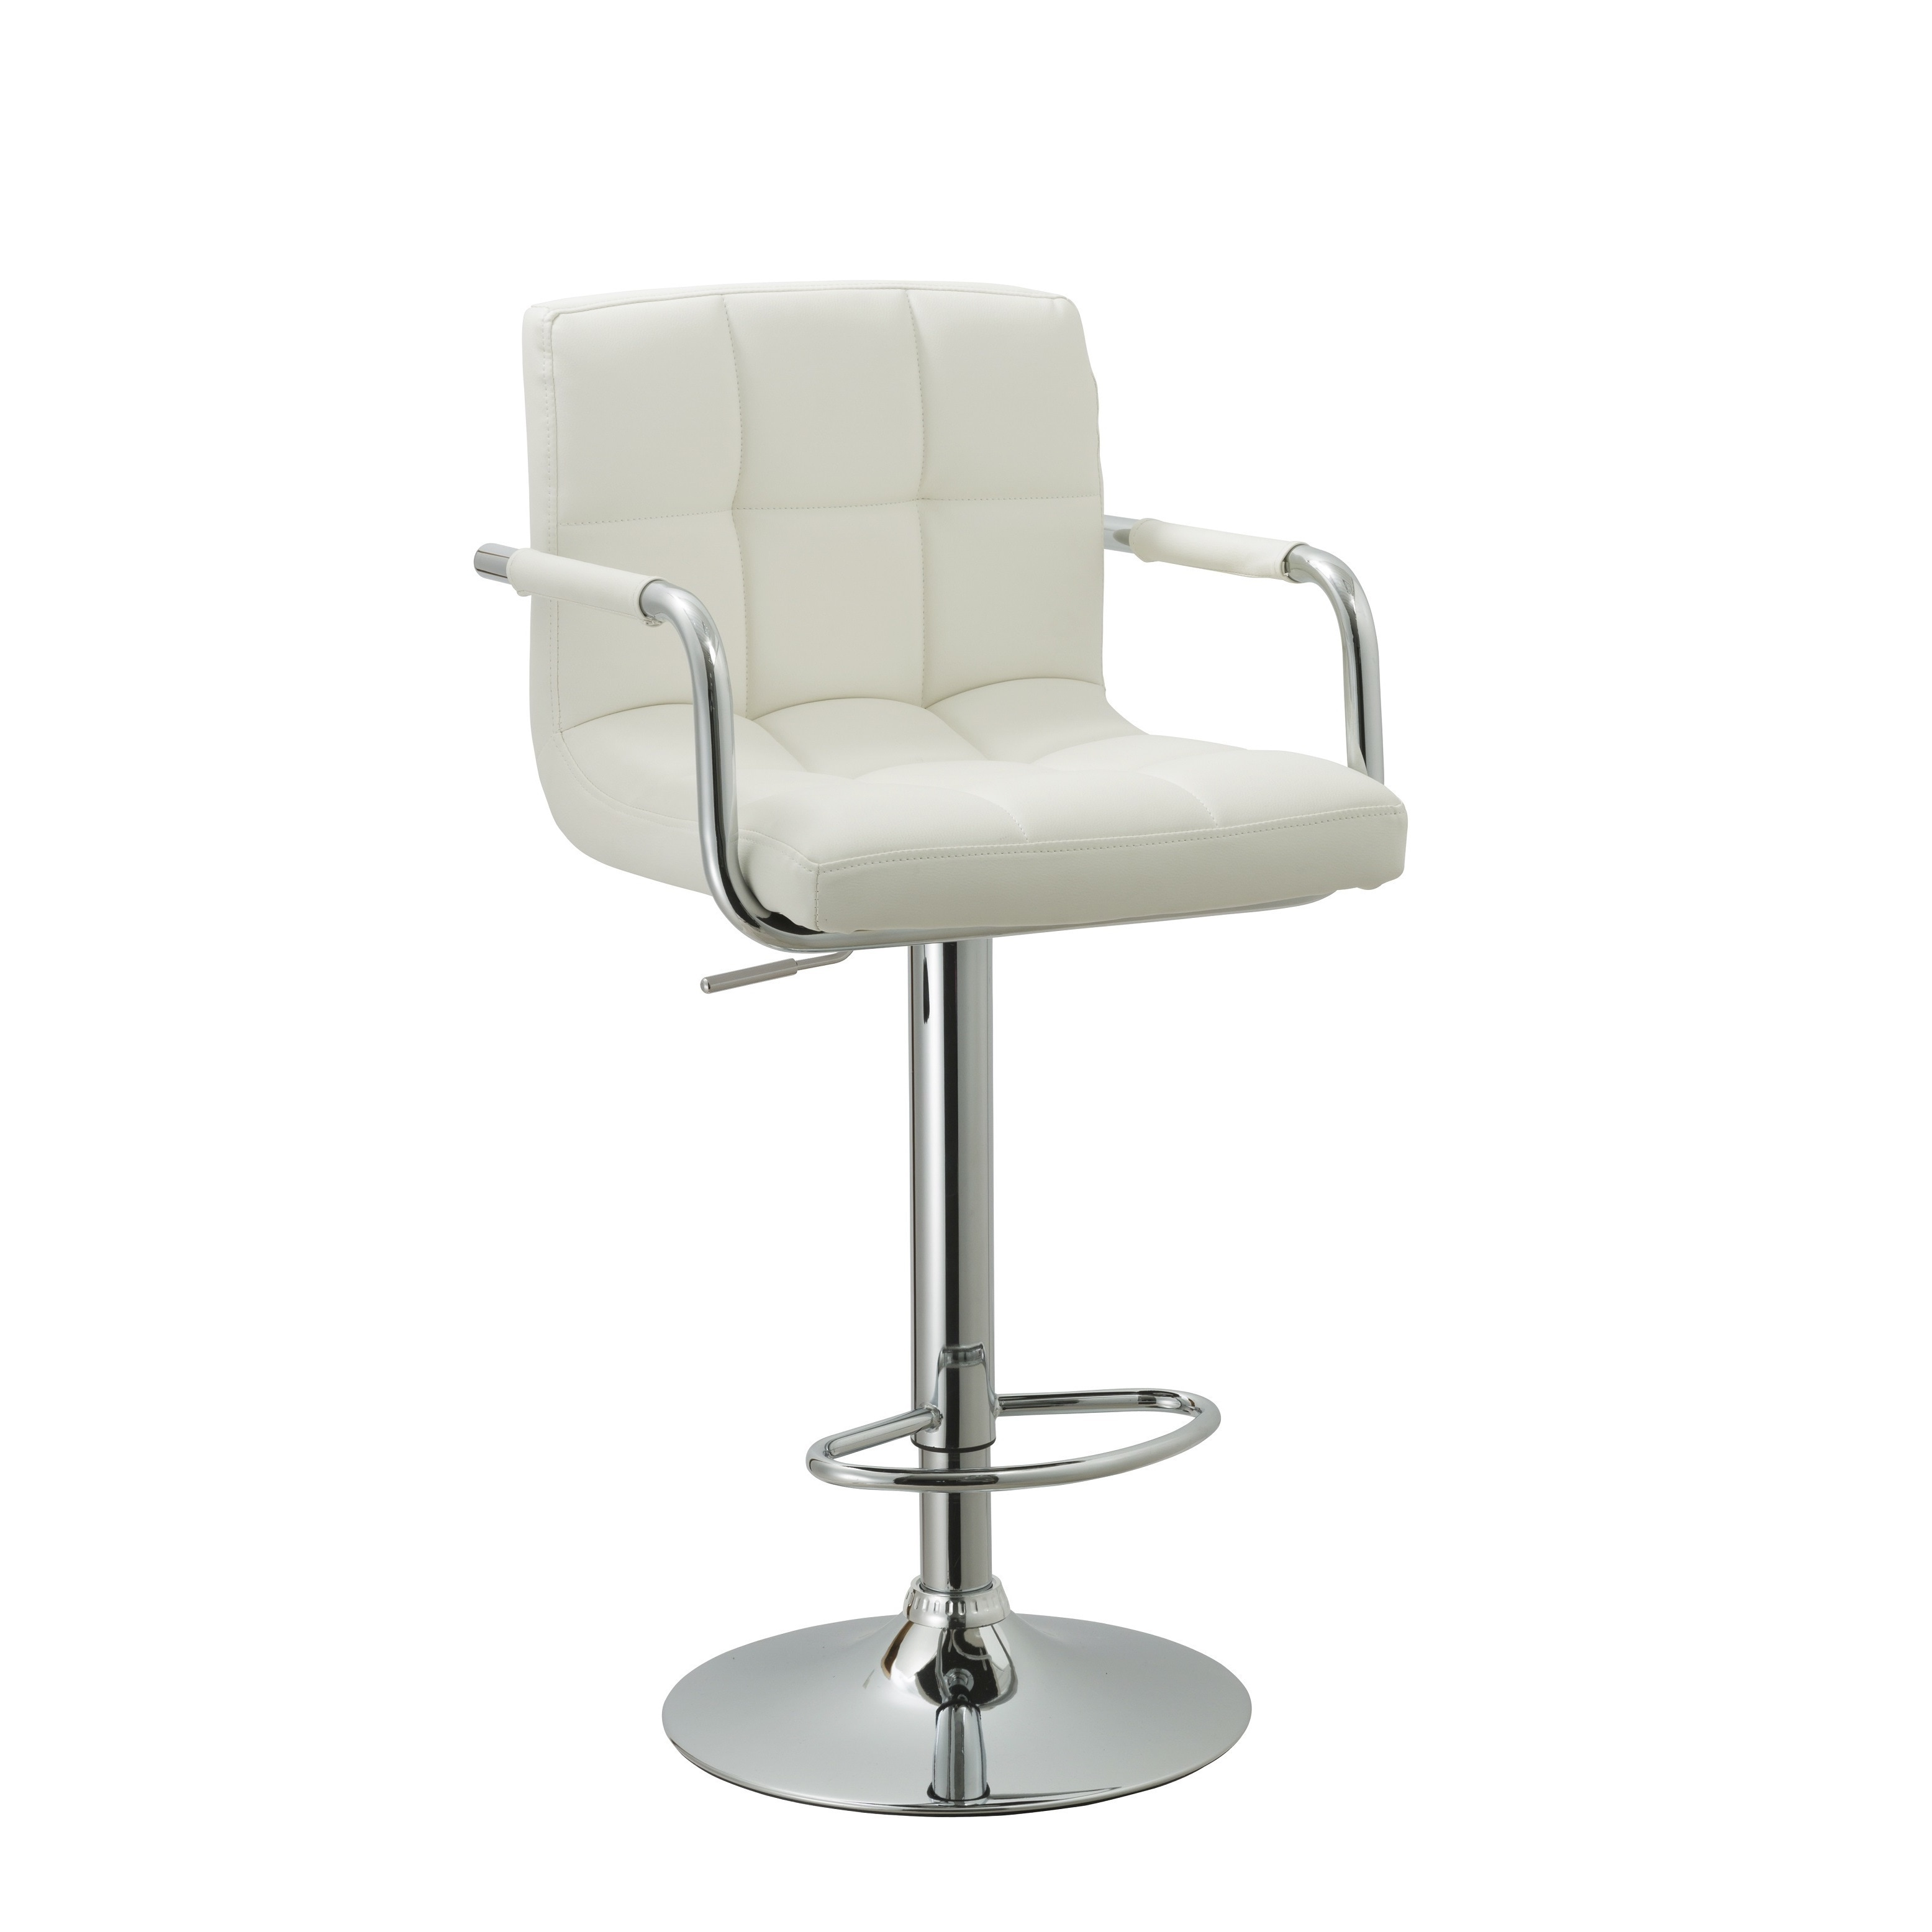 Shop white leatherette swivel adjustable retro bar stool 25 33h on sale free shipping today overstock com 11205573